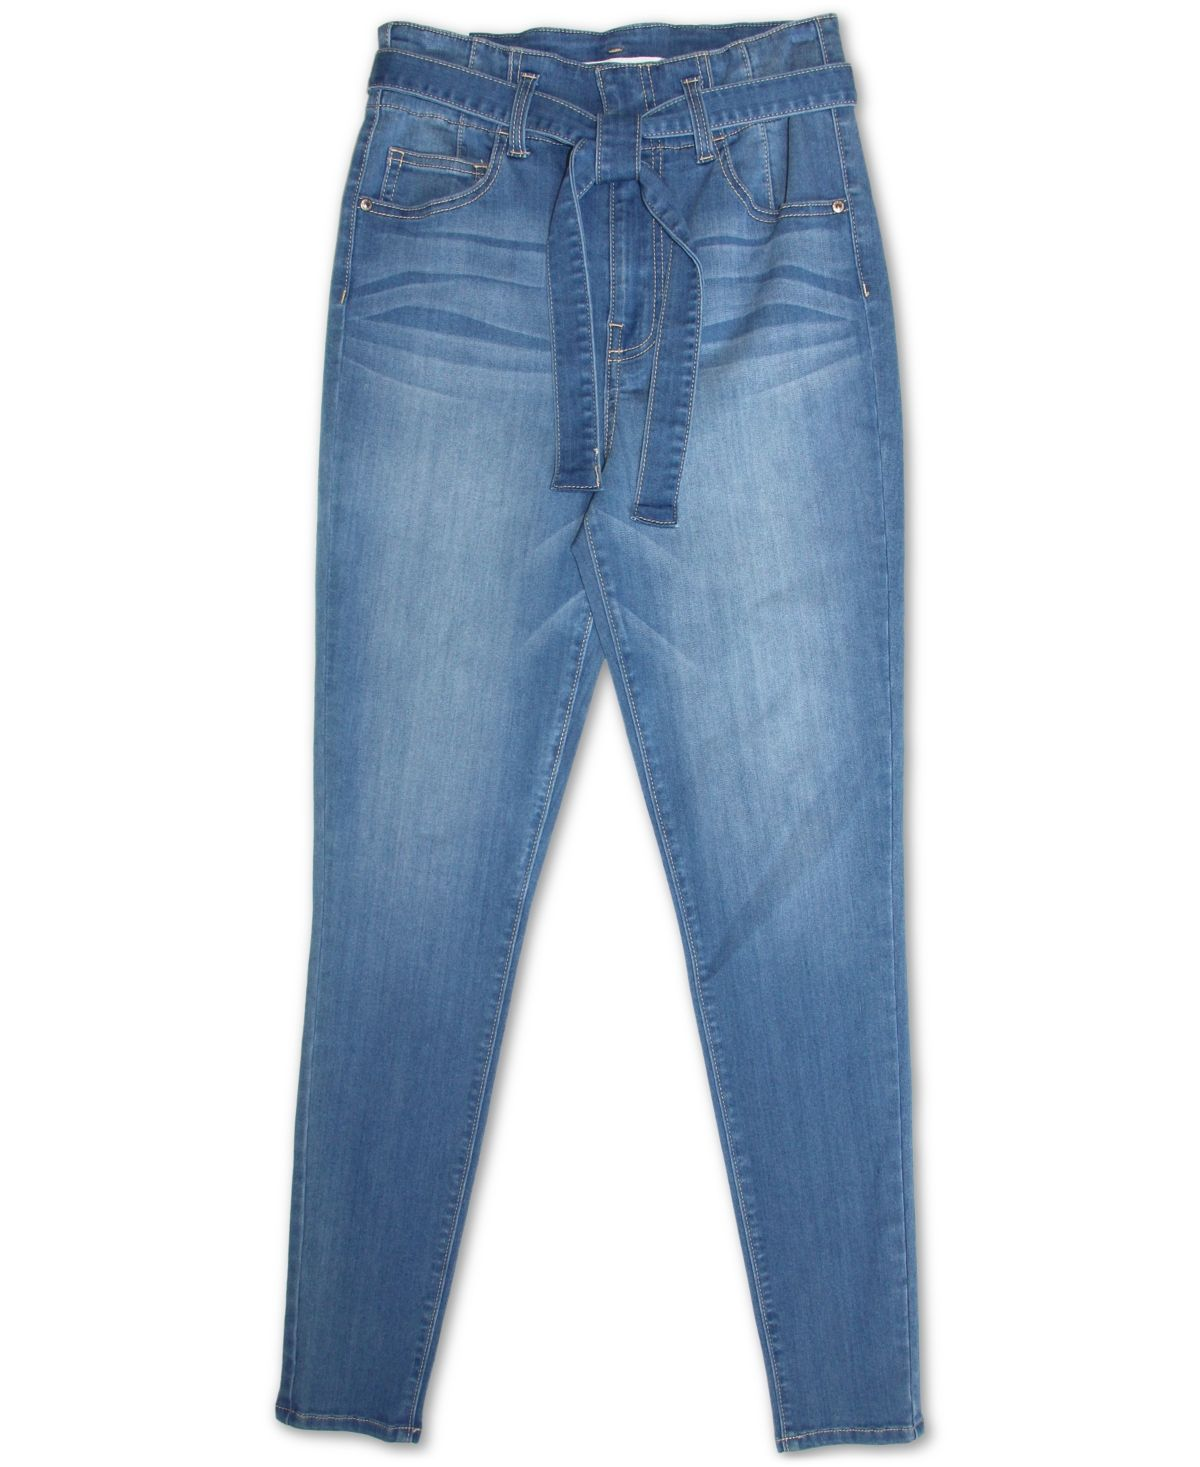 Cut in a high-waisted silhouette, these jeans from Almost Famous offers a laid back on-trend look that will have you reaching for them whether you're dressing up or down.